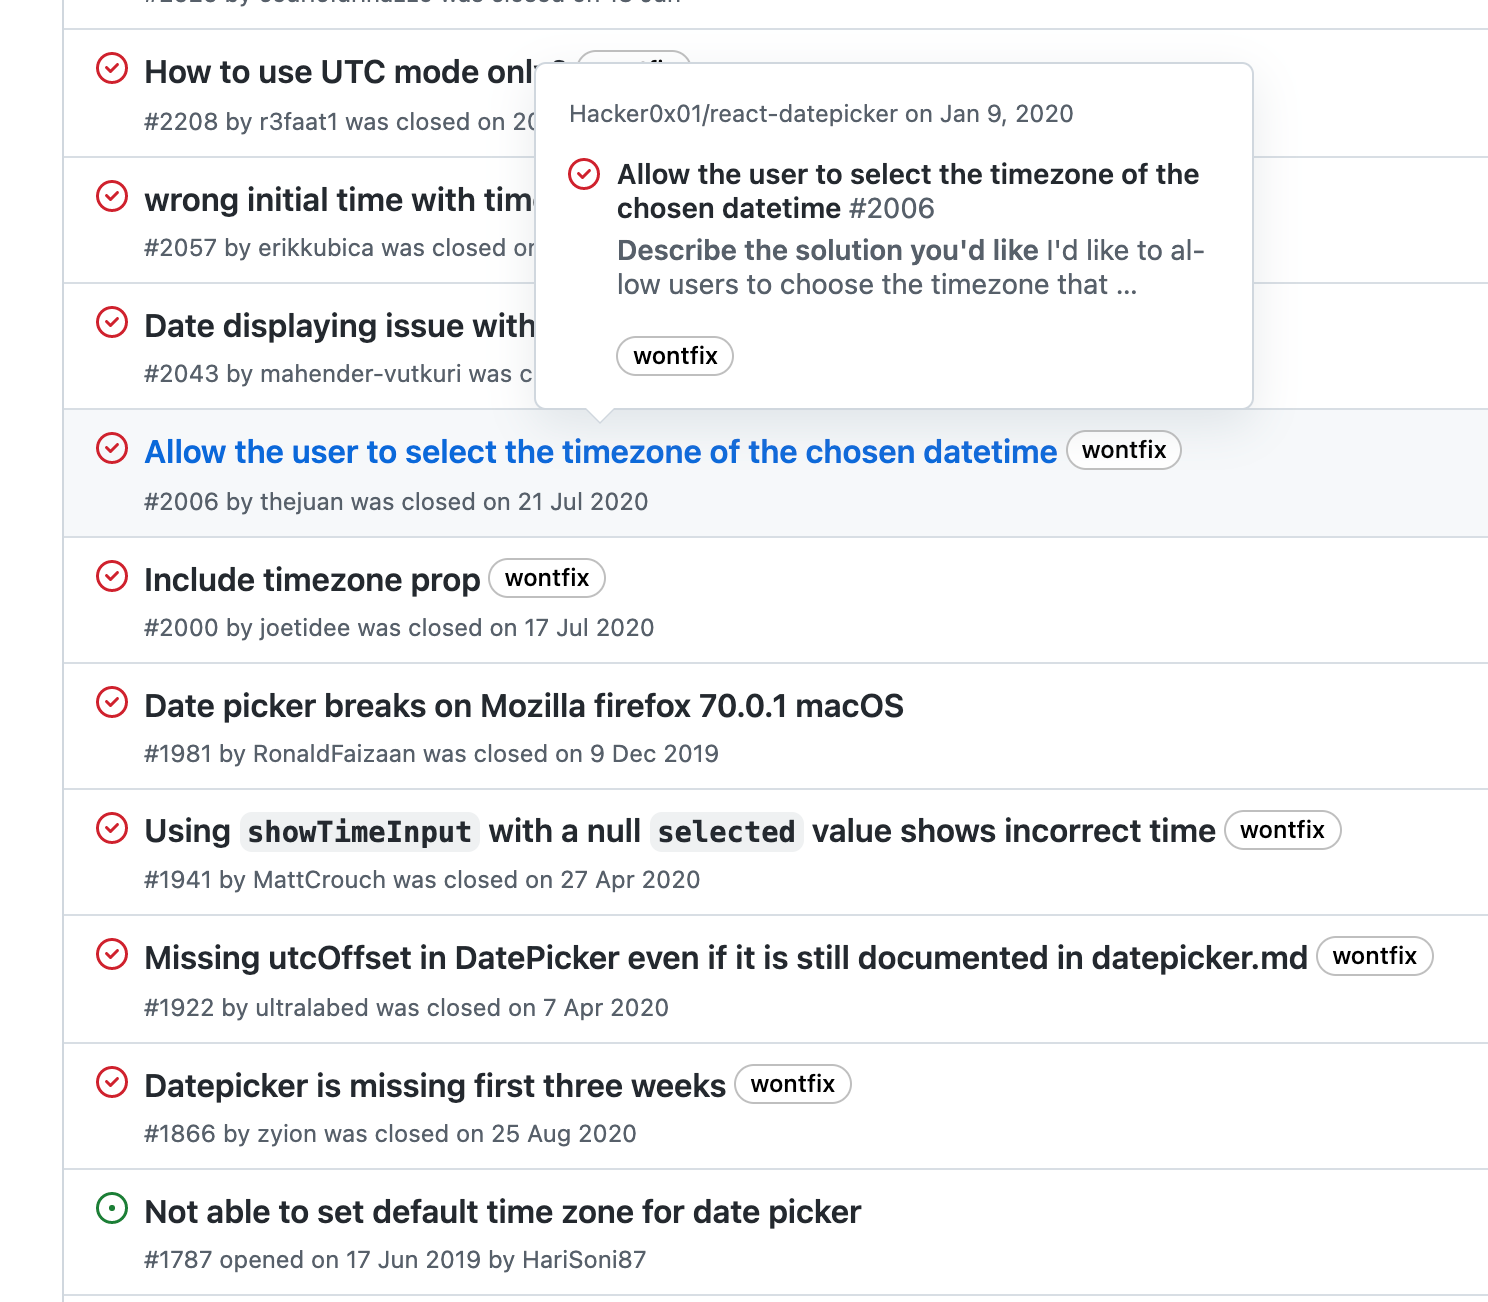 Many, many issues in GitHub with titles describing issues with setting timezones with React Datepicker